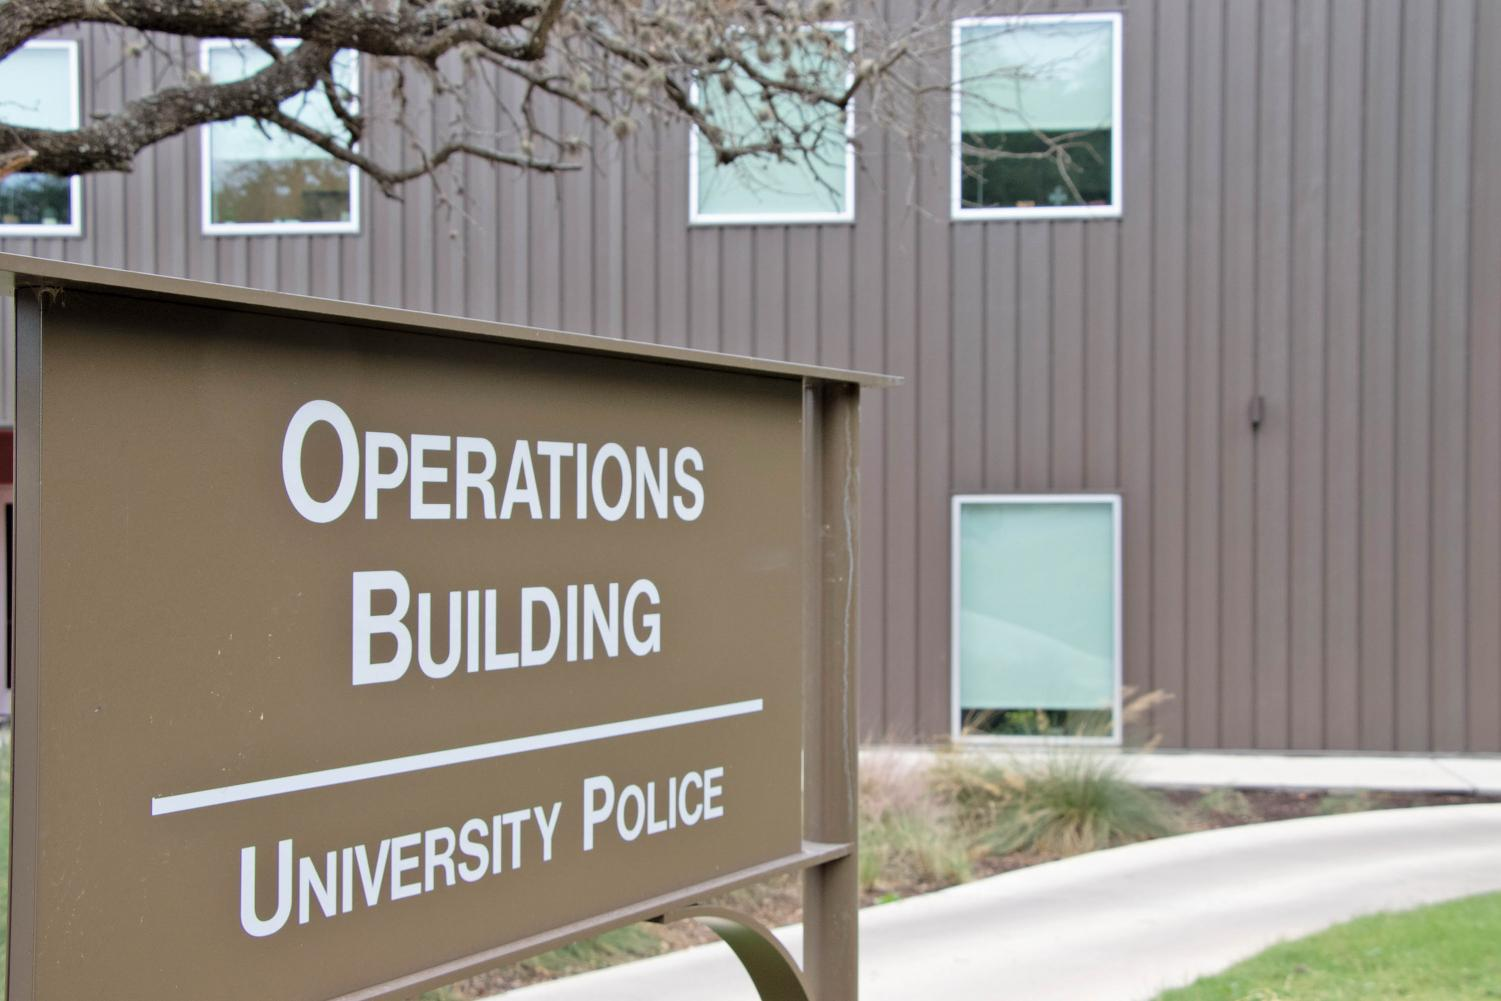 UPD can be located in the Operations Building next to the on-campus tennis courts. UPD offers services to students such as self-defense training.